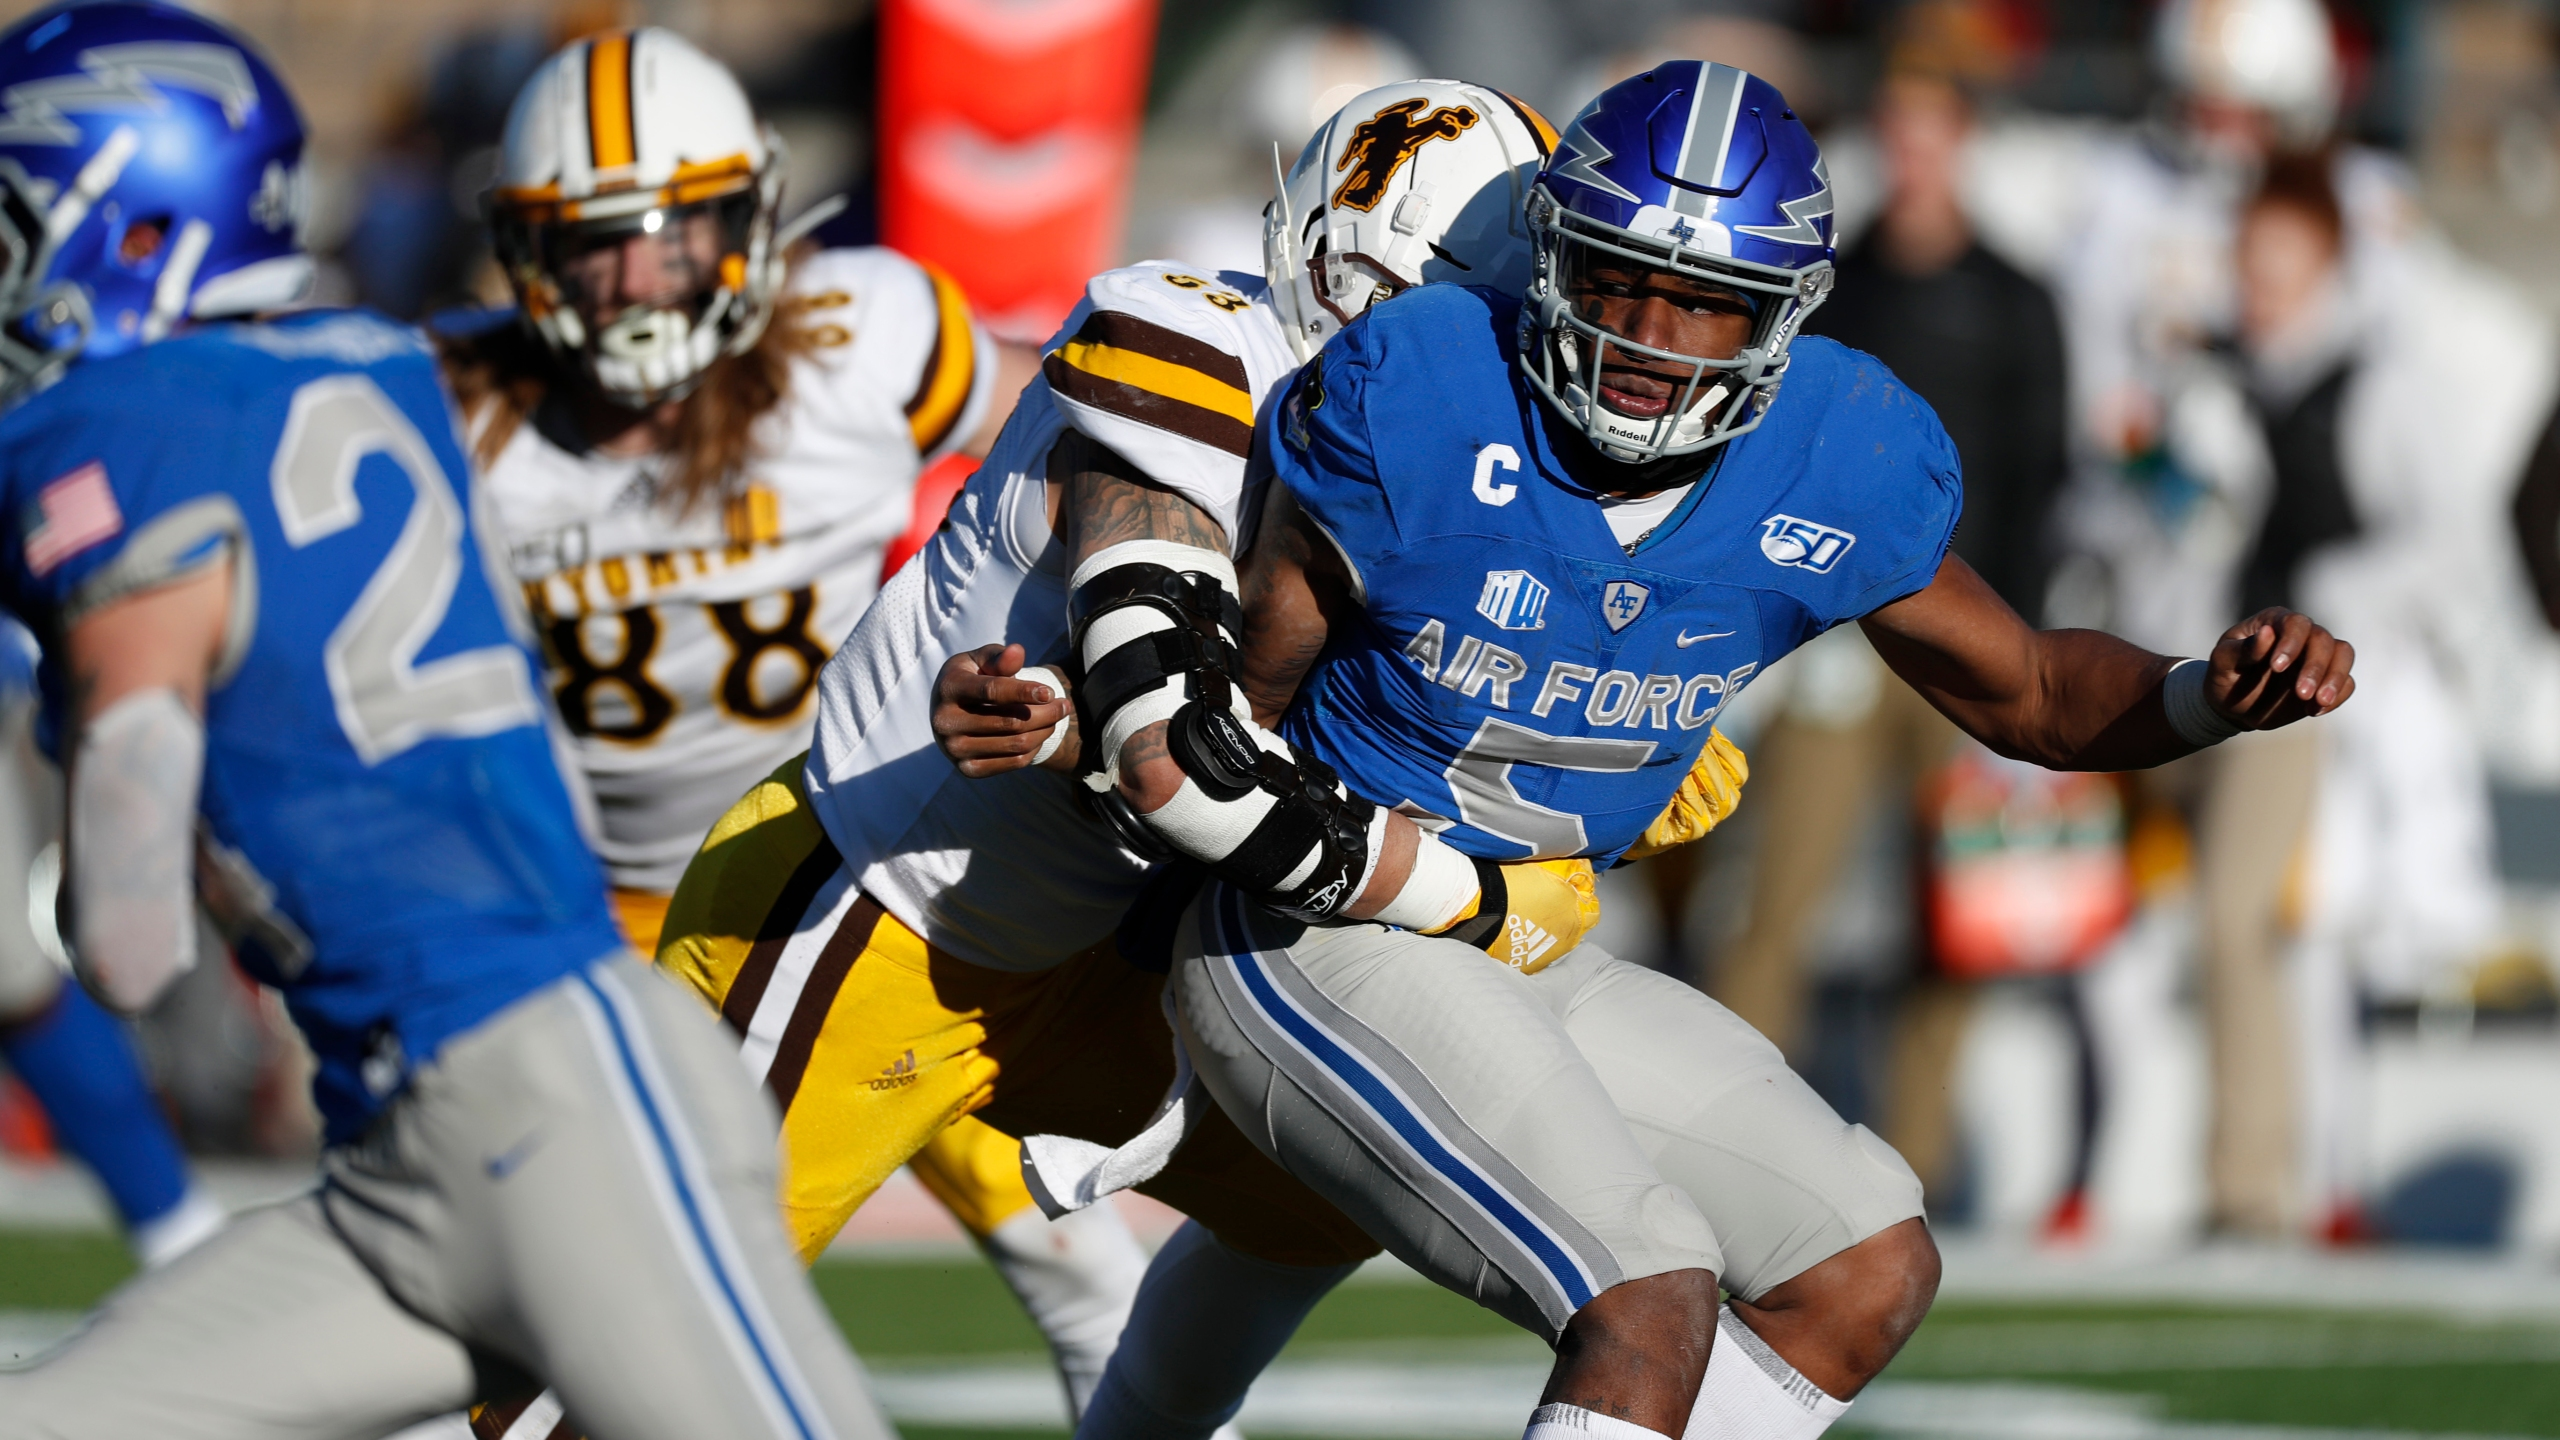 Wyoming defensive end Josiah Hall (53) hits Air Force quarterback Donald Hammond III (5) in the second half of an NCAA college football game Saturday, Nov. 30, 2019, at Air Force Academy, Colo. Air Force won 20-6. (AP Photo/David Zalubowski)